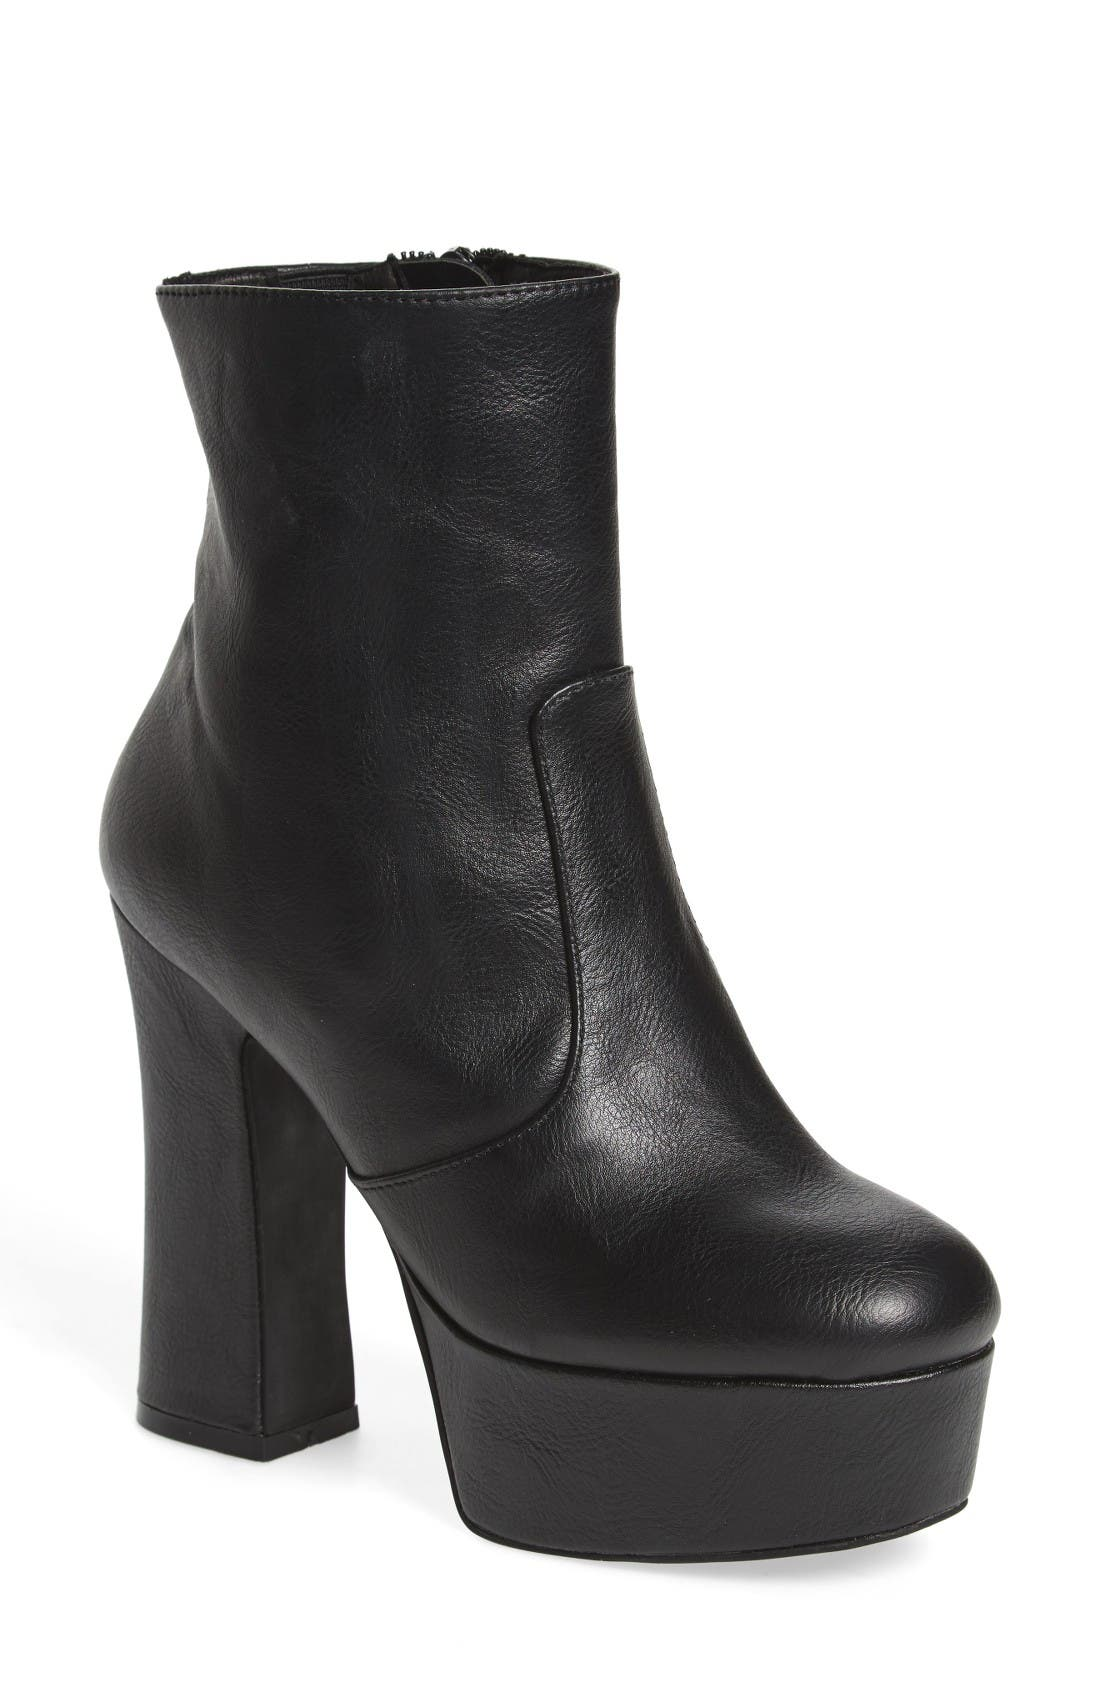 Alternate Image 1 Selected - Jeffrey Campbell De-Facto Block Heel Platform Bootie (Women)